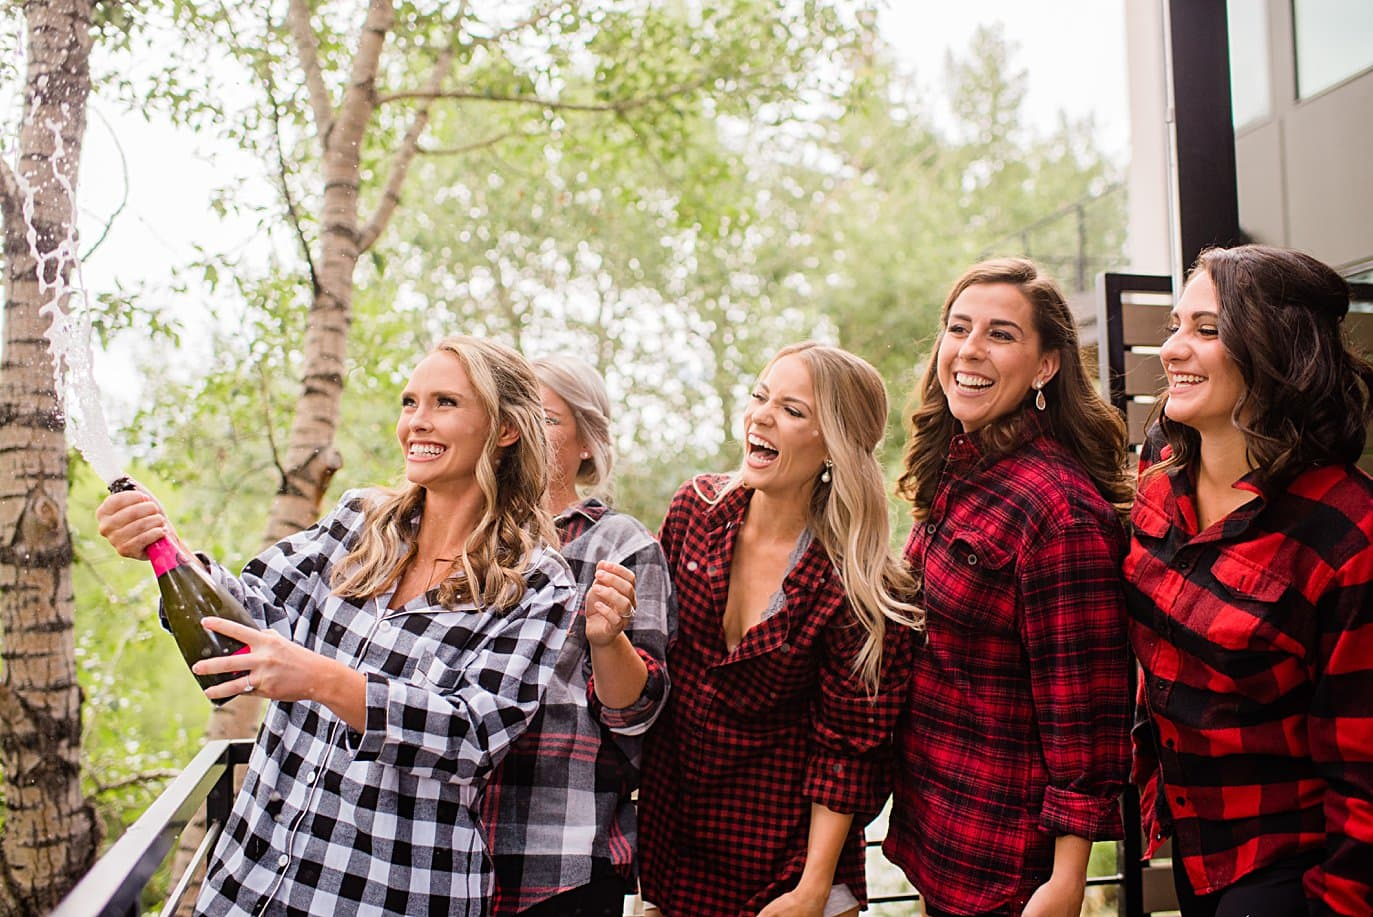 bride and bridesmaids in plaid shirts popping champagne while getting ready at Larkspur Vail Wedding by Vail Wedding photographer Jennie Crate